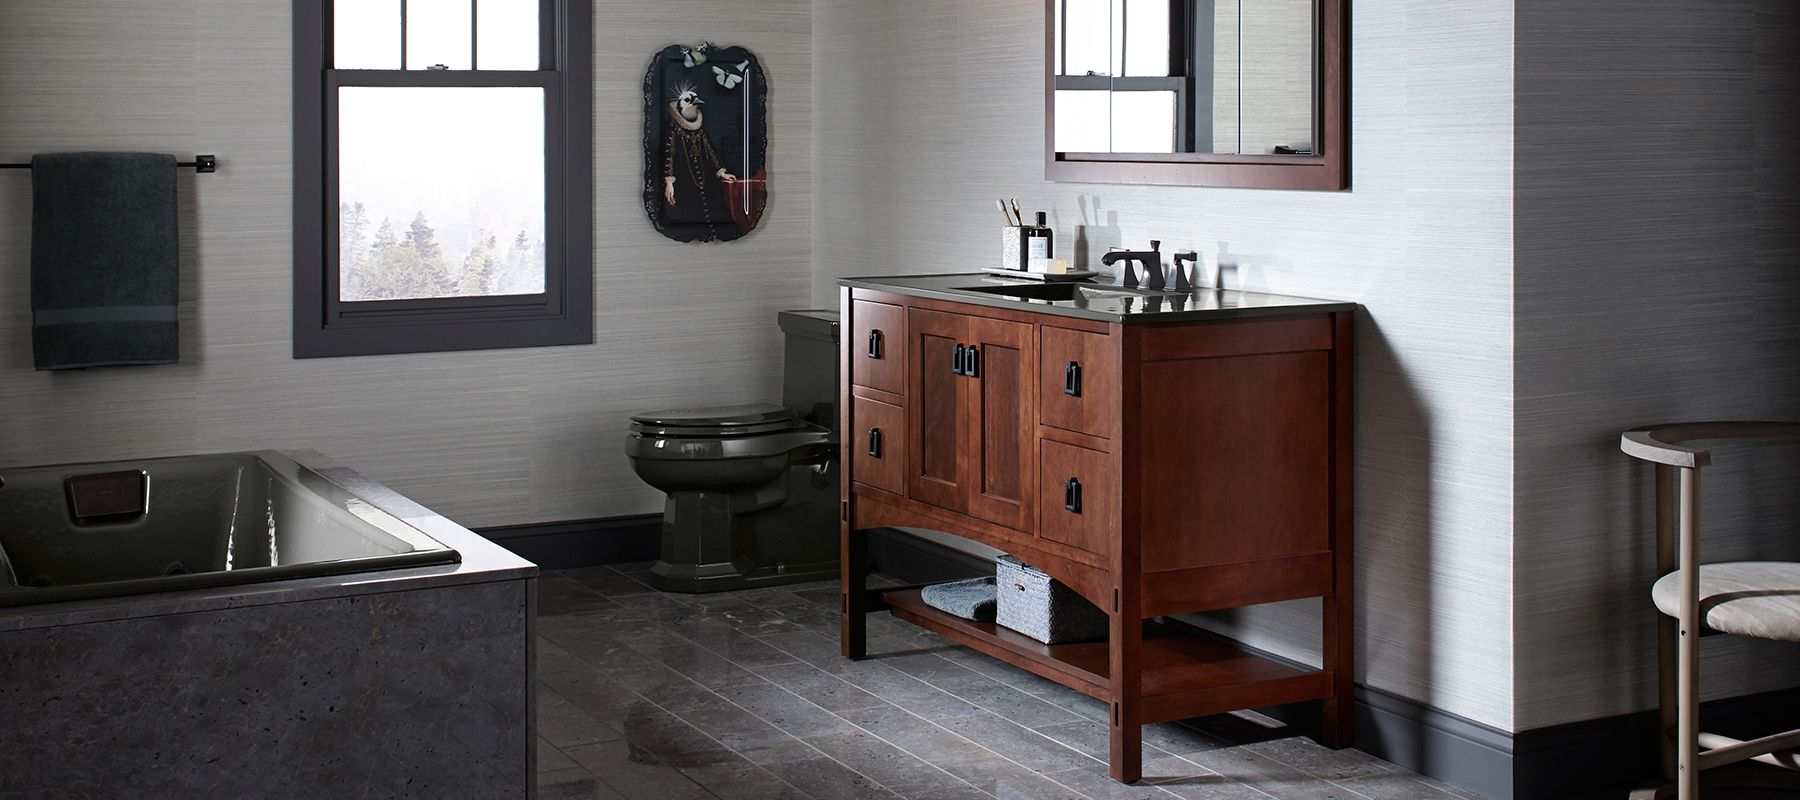 Bathroom Vanities For Sale Near Me bathroom vanities |bathroom | kohler